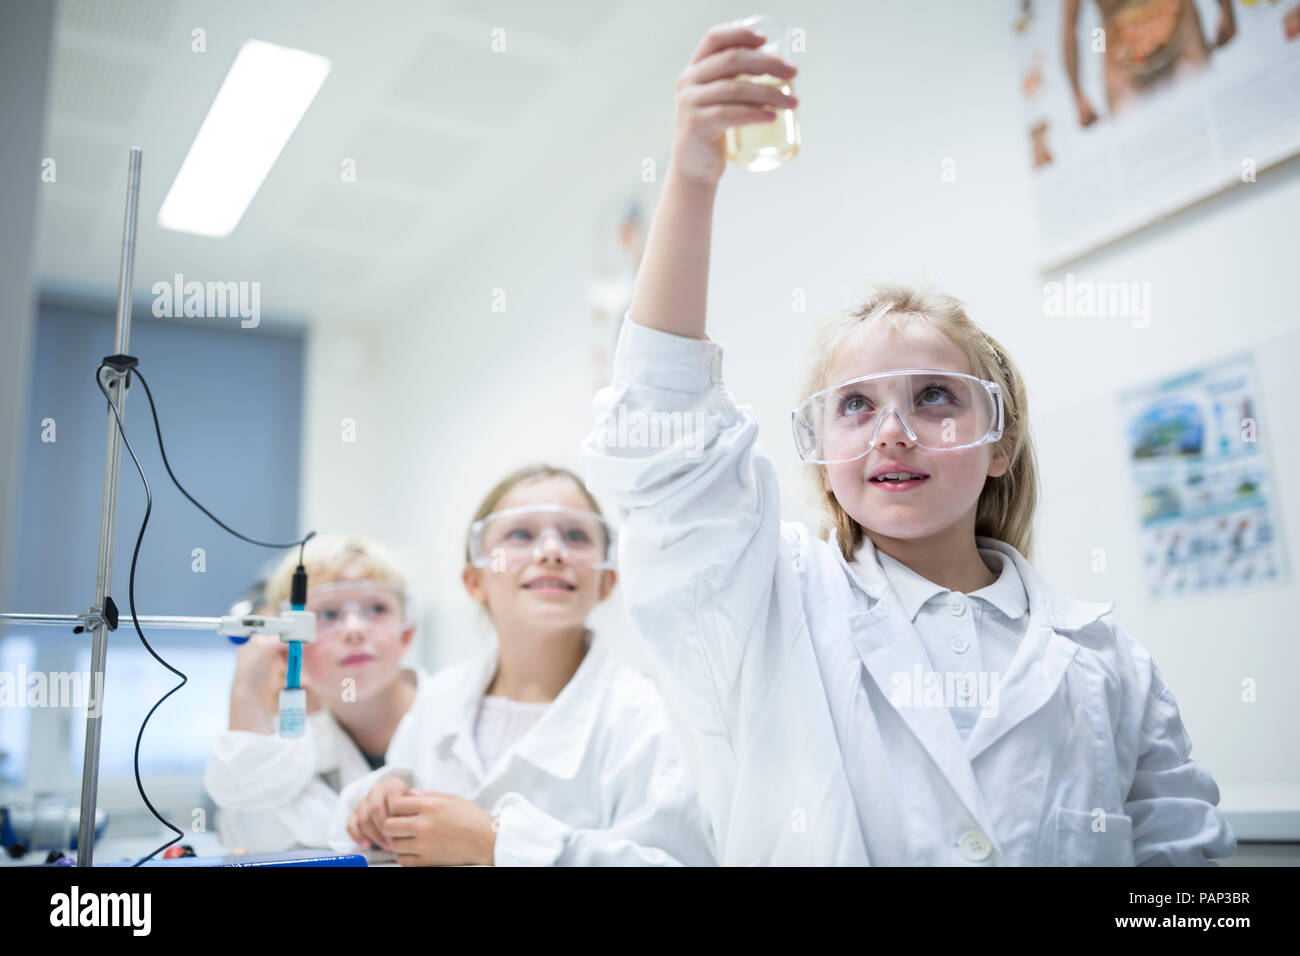 Pupils in science class experimenting with liquid - Stock Image